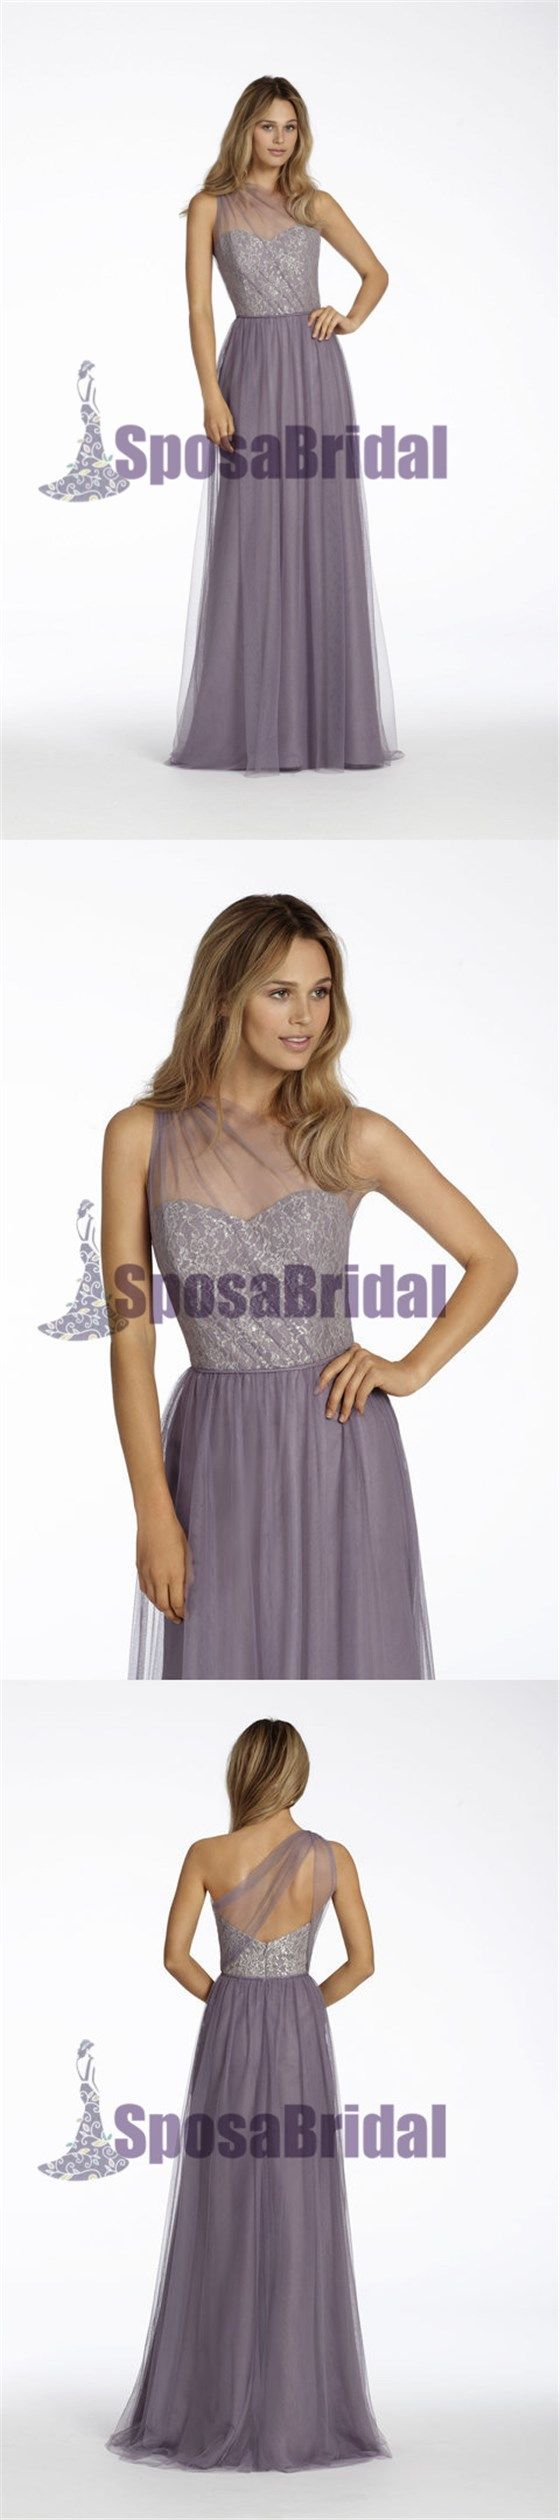 Lilac One Shoulder Unique Design Tulle Bridesmaid Dresses, Most Popular Bridesmaid Dress, PD0488 #bridesmaiddresses#sposabridal